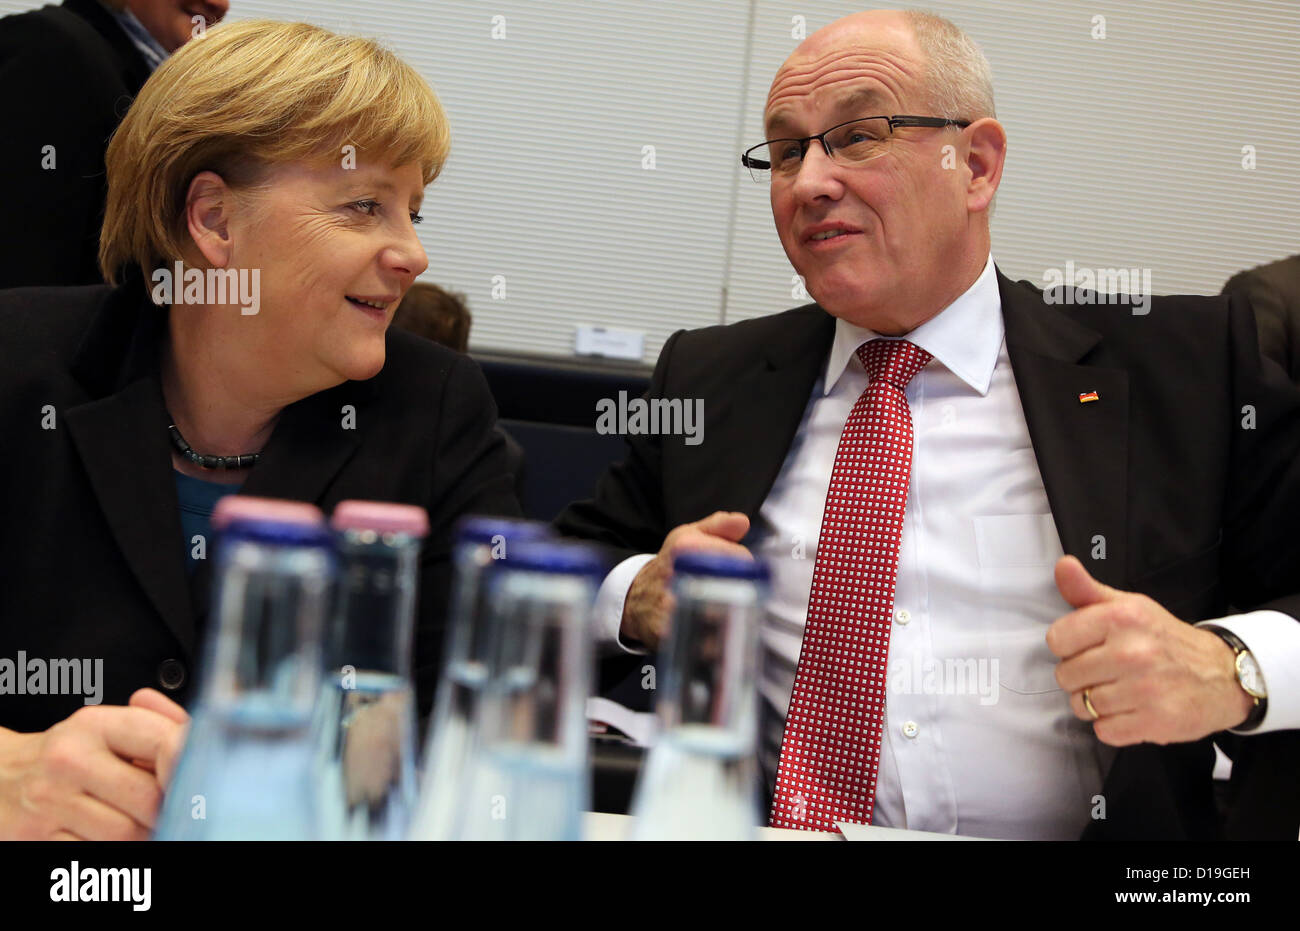 German Chancellor Angela Merkel and CDU/CSU parliamentary party chairman Volker Kauder talk at the start of a meeting Stock Photo